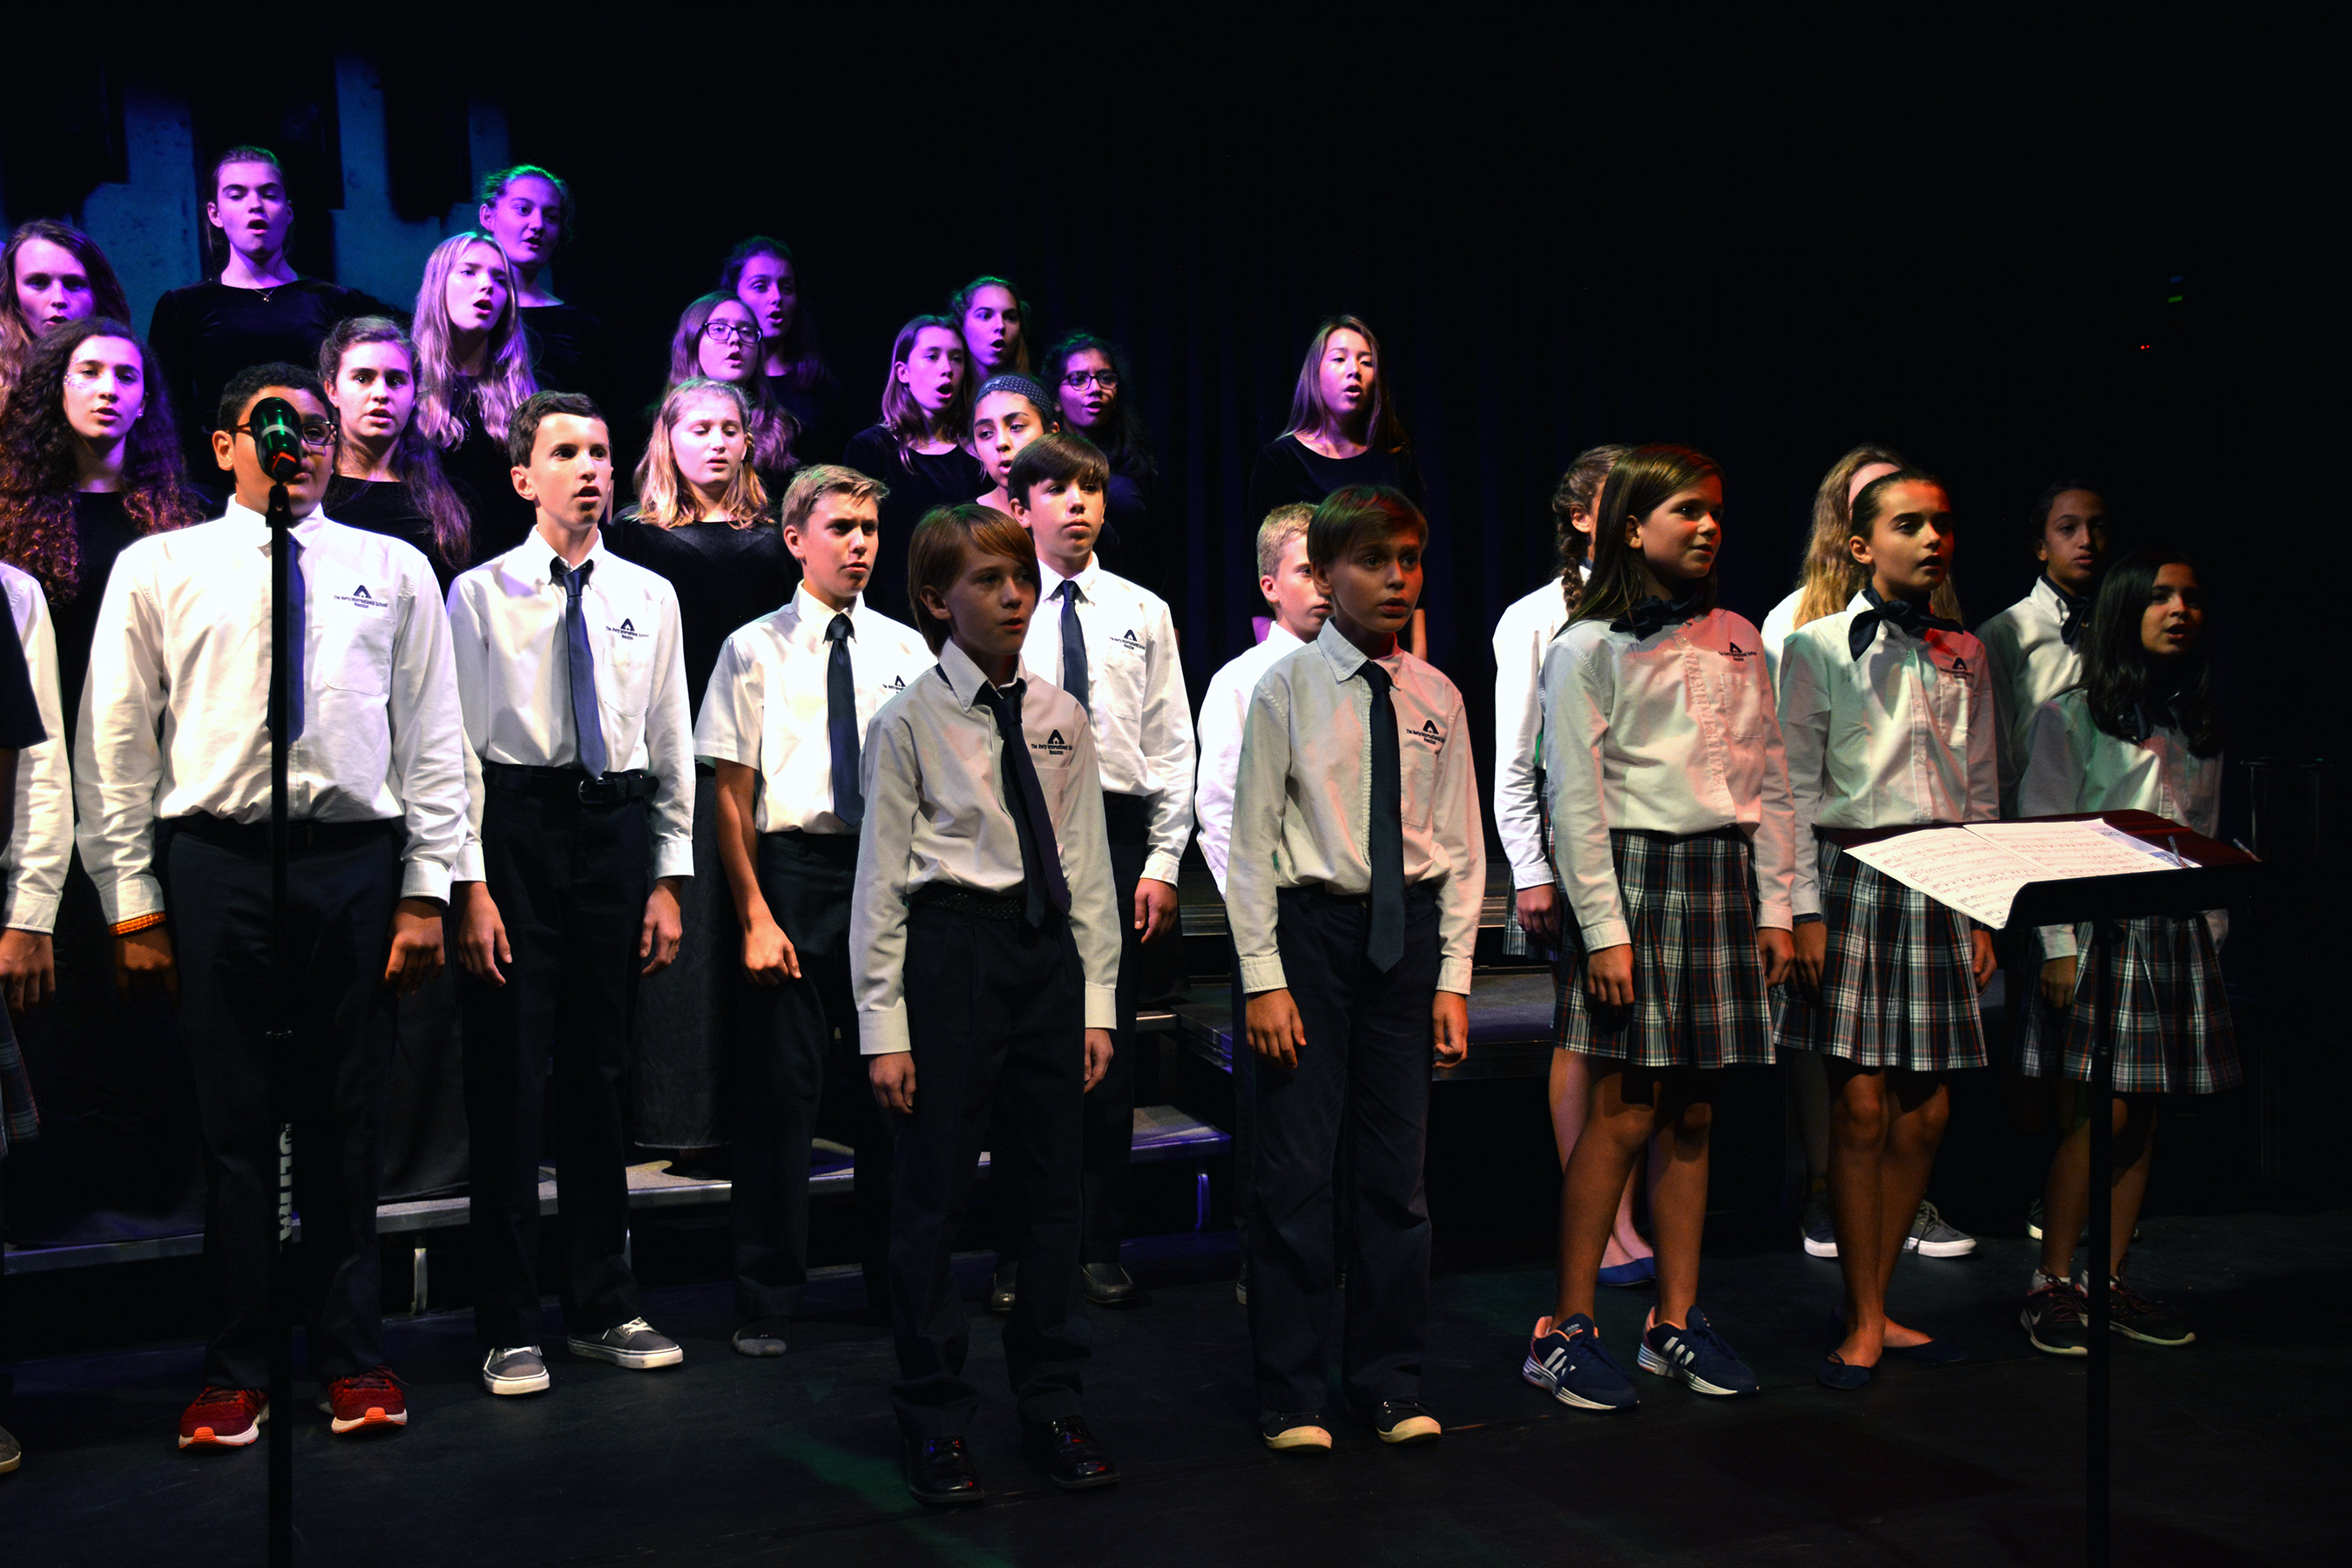 Awty choir kids singing on stage